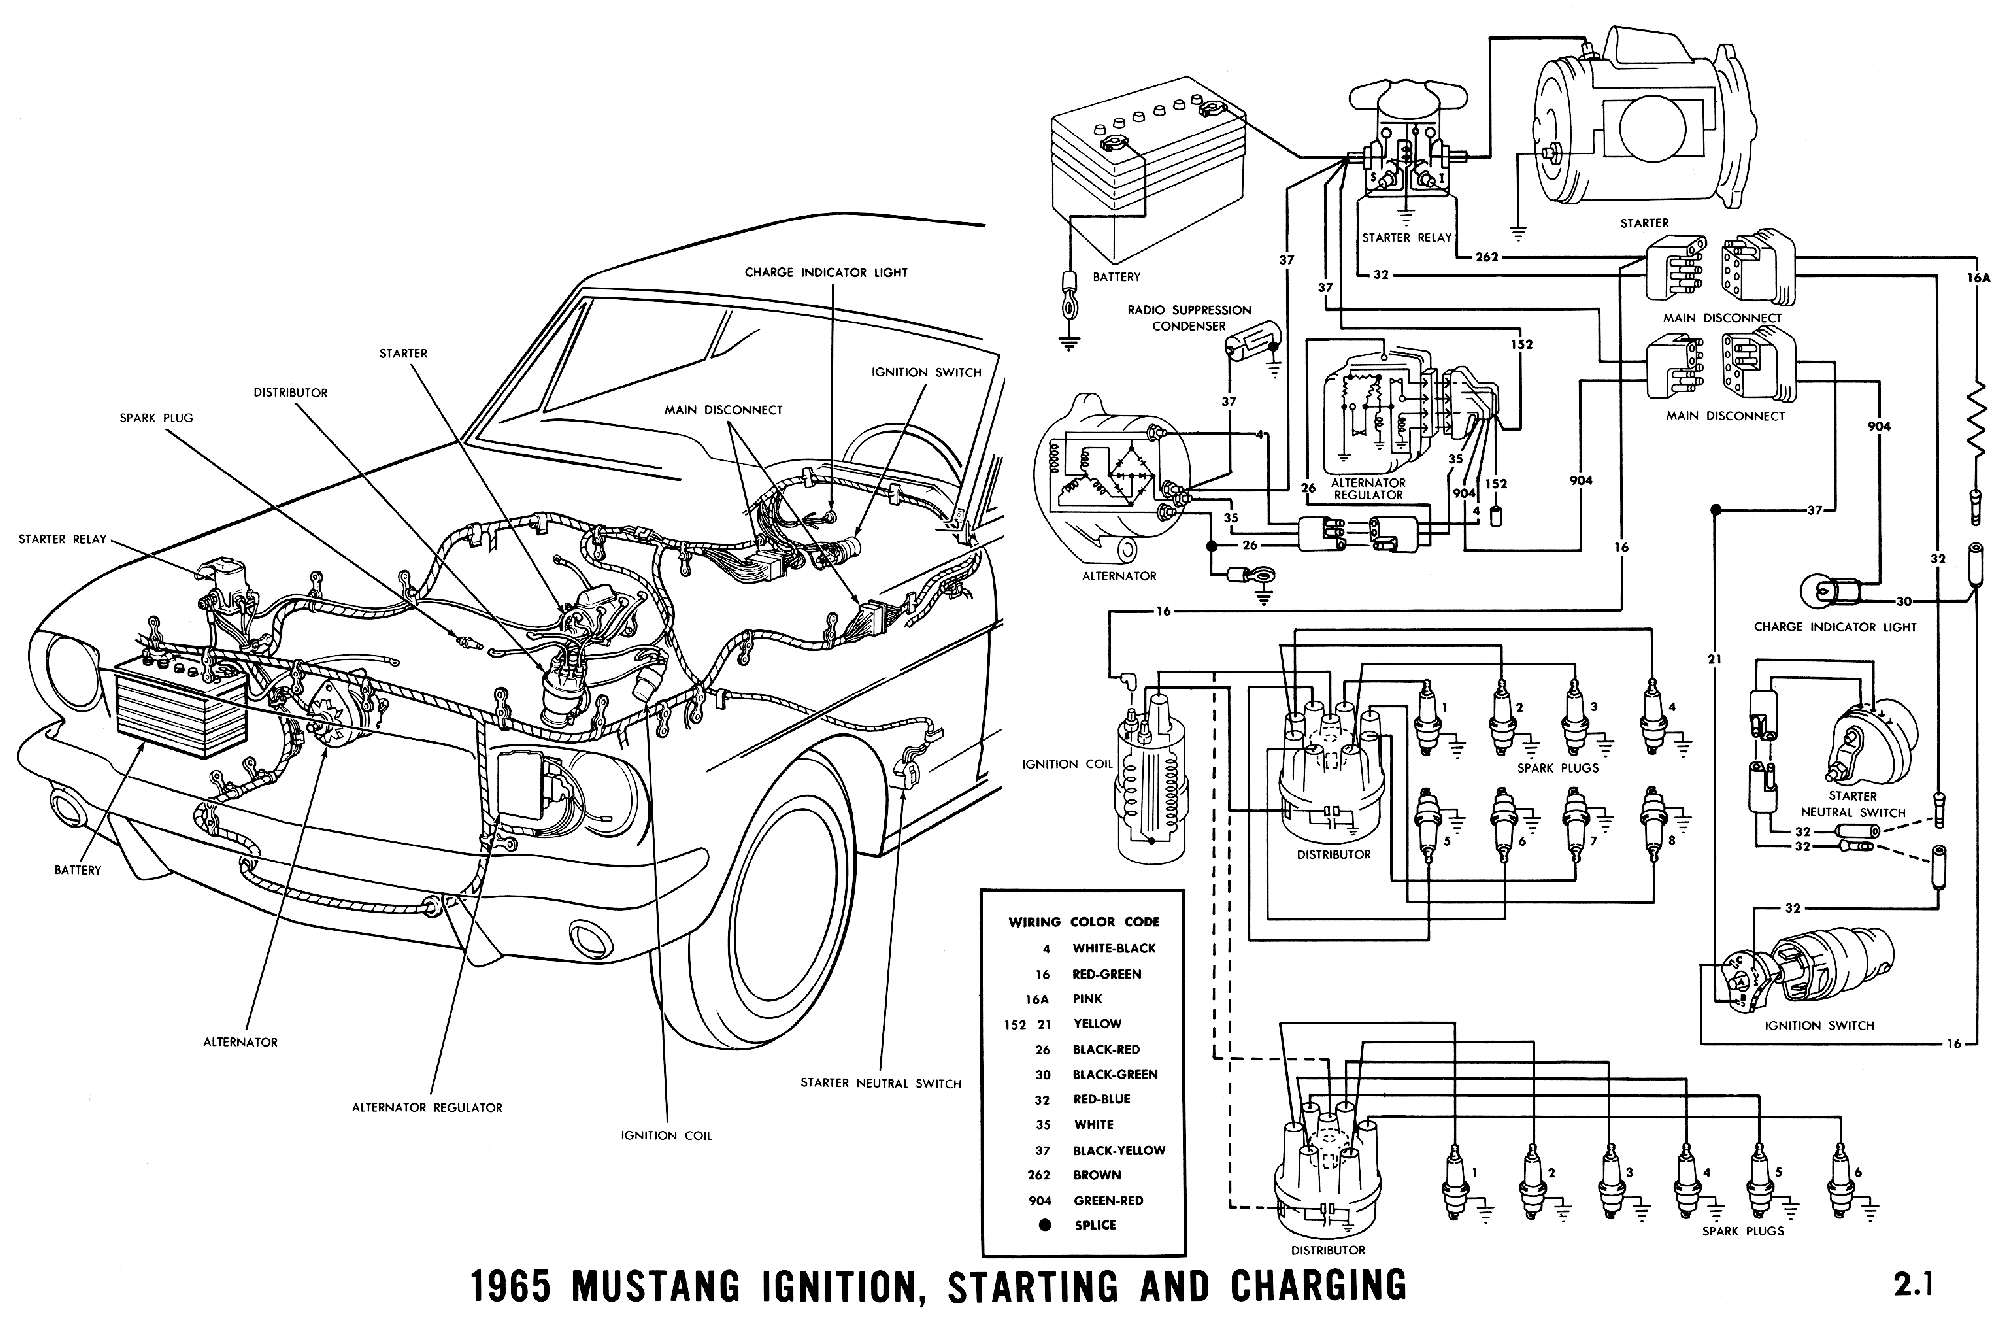 1965 Mustang Wiring Diagrams Average Joe Restoration Diagram Gm 3 Wire Alternator Ford Charging Pictorial And Schematic